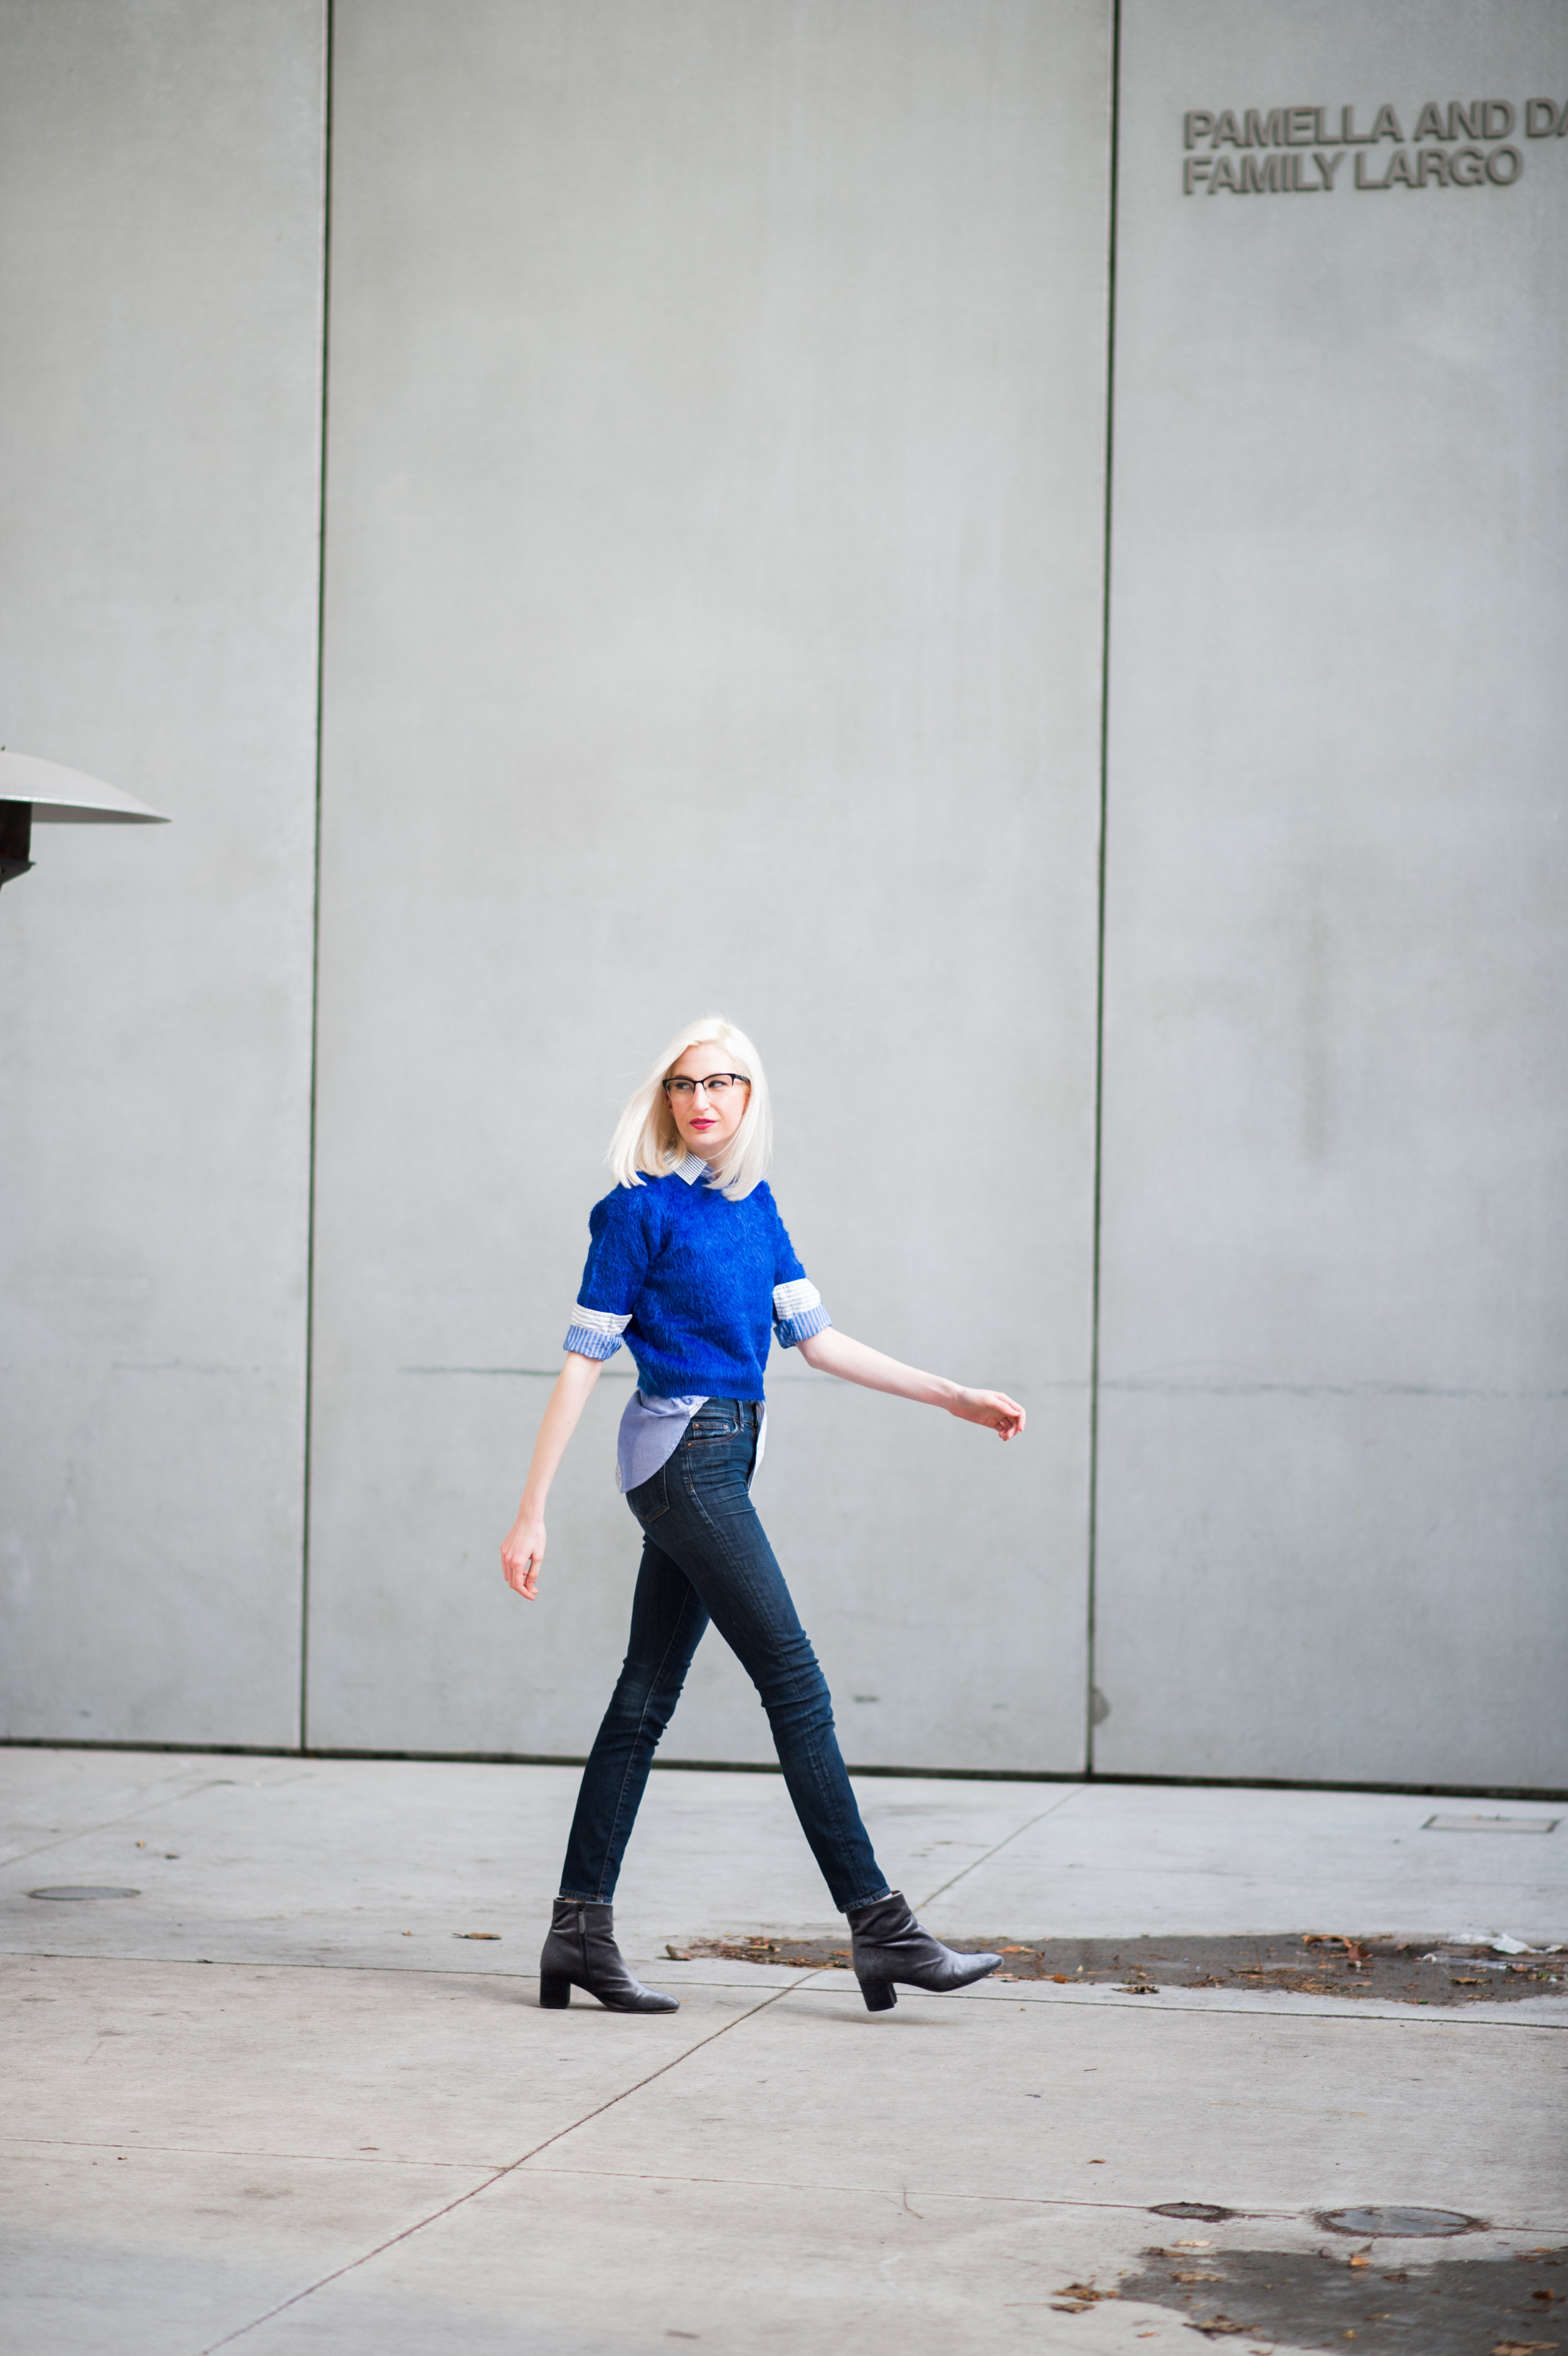 J.Crew cocktail shirt, fuzzy crop top tee, high waisted jeans, velvet ankle booties, fall fashion, cobalt blue